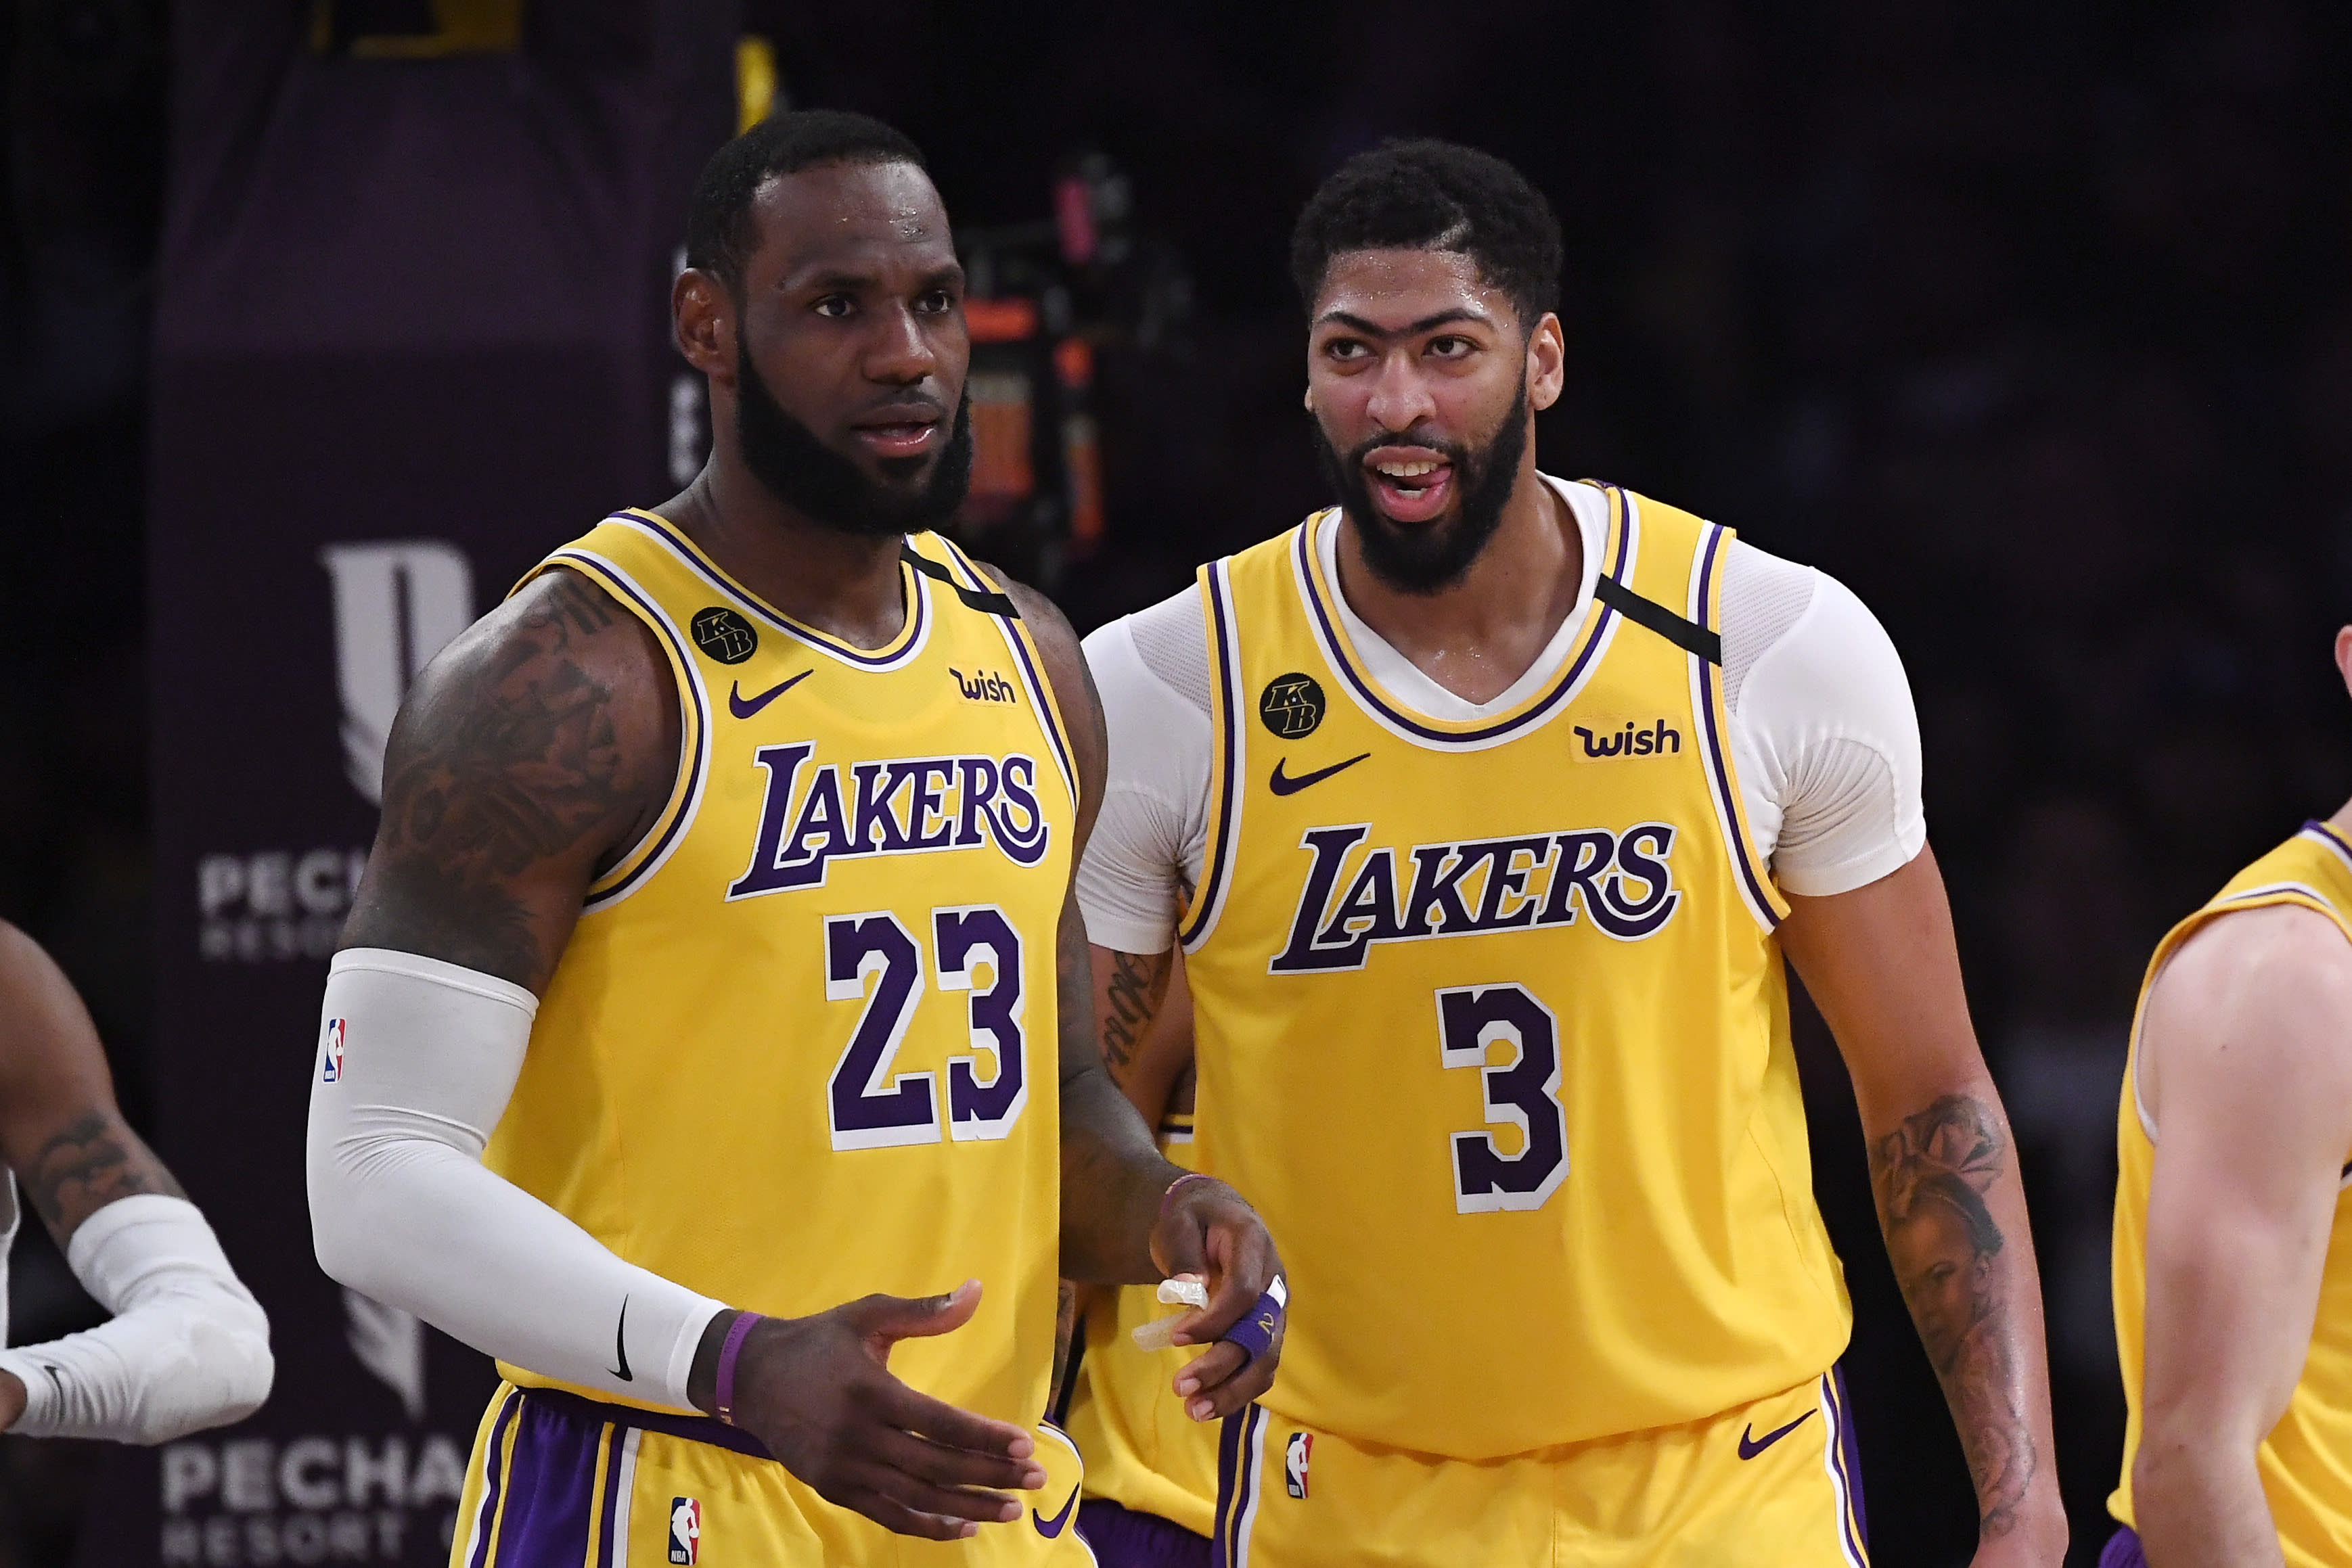 FILE - In this Feb. 21, 2020, file photo, Los Angeles Lakers forward LeBron James, left, stands with forward Anthony Davis during the second half of an NBA basketball game against the Memphis Grizzlies in Los Angeles. James and Davis had the Lakers on course to contend for another NBA title before the coronavirus pandemic upended their first season together. The superstars see no reason they can't continue their quest in Orlando, and Davis even thinks the Lakers' chances have improved.(AP Photo/Mark J. Terrill, File)